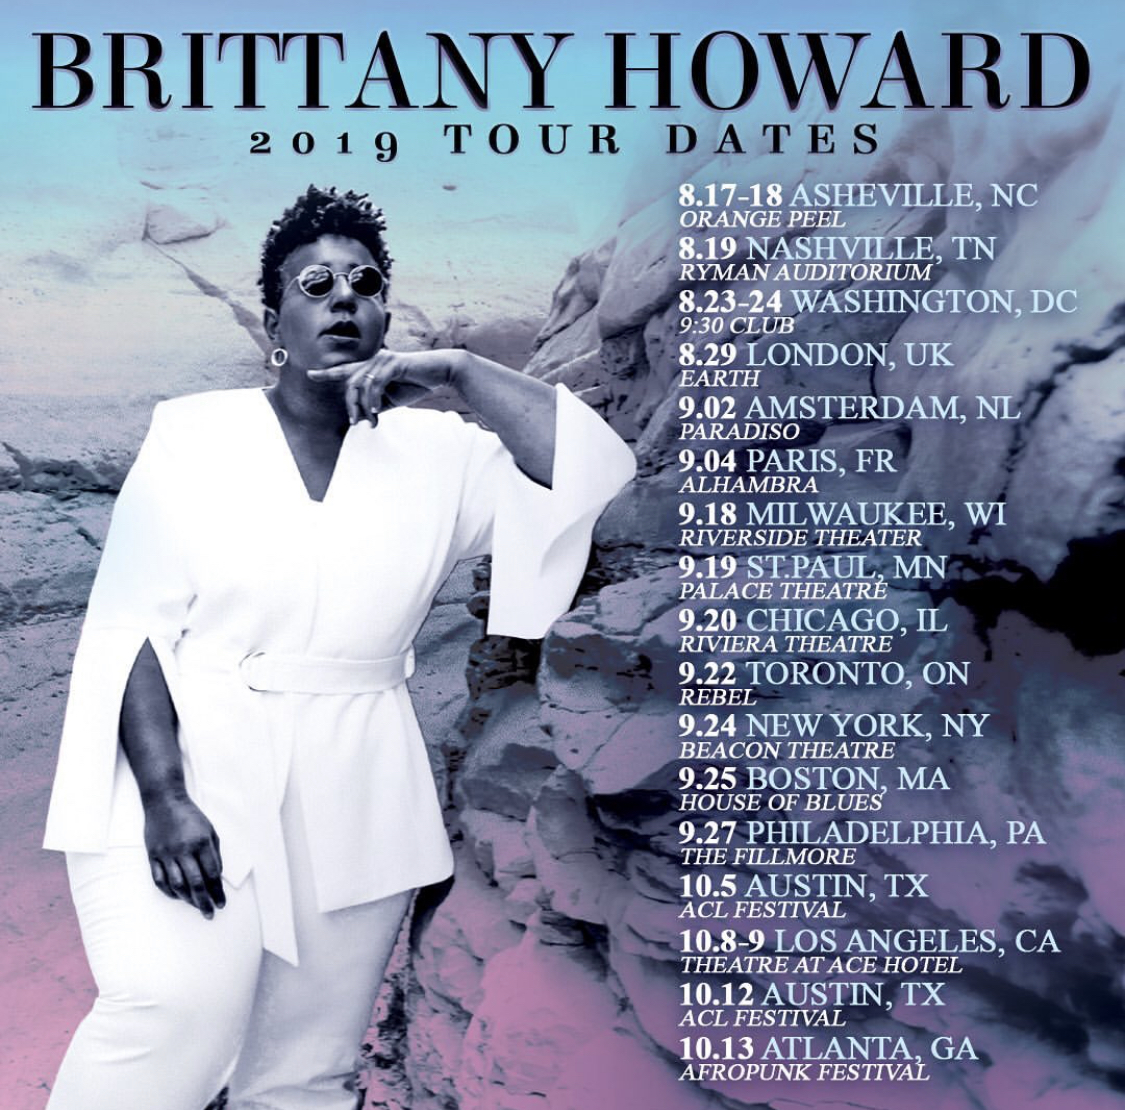 Brittany Howard Tour